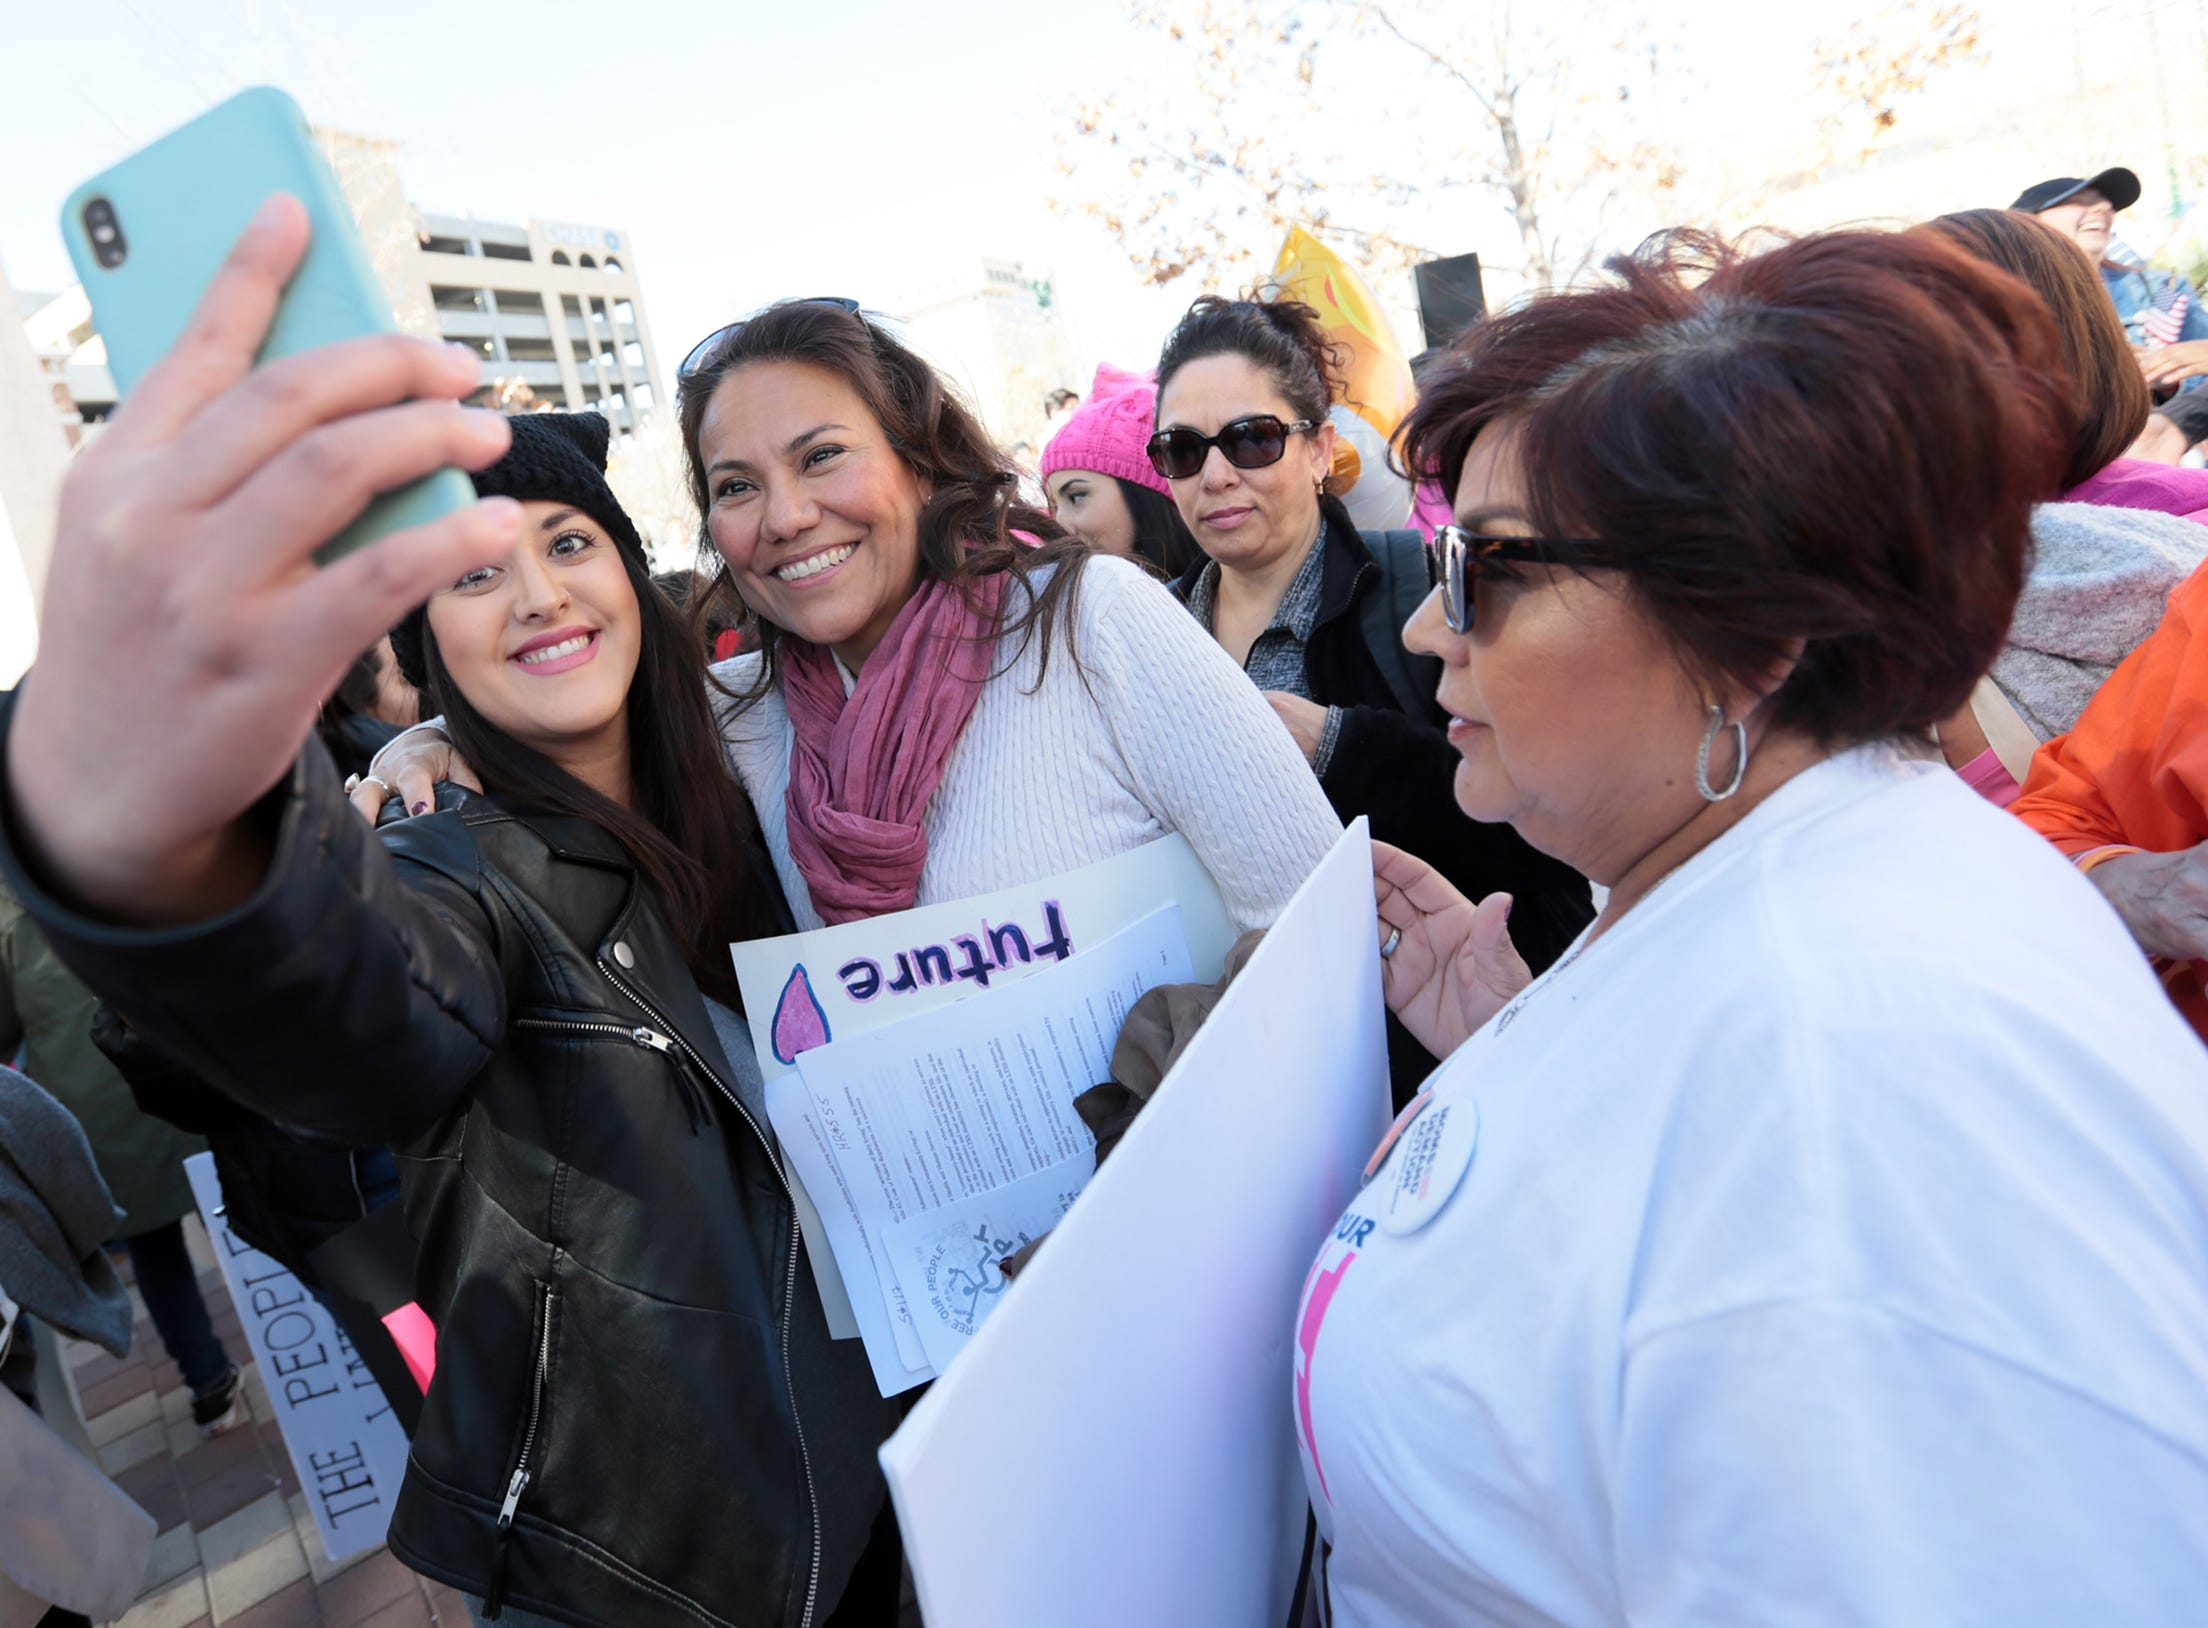 U.S. Rep. Veronica Escobar, D-Texas, takes selfies with supporters during the El Paso Women's March rally at San Jacinto Plaza.